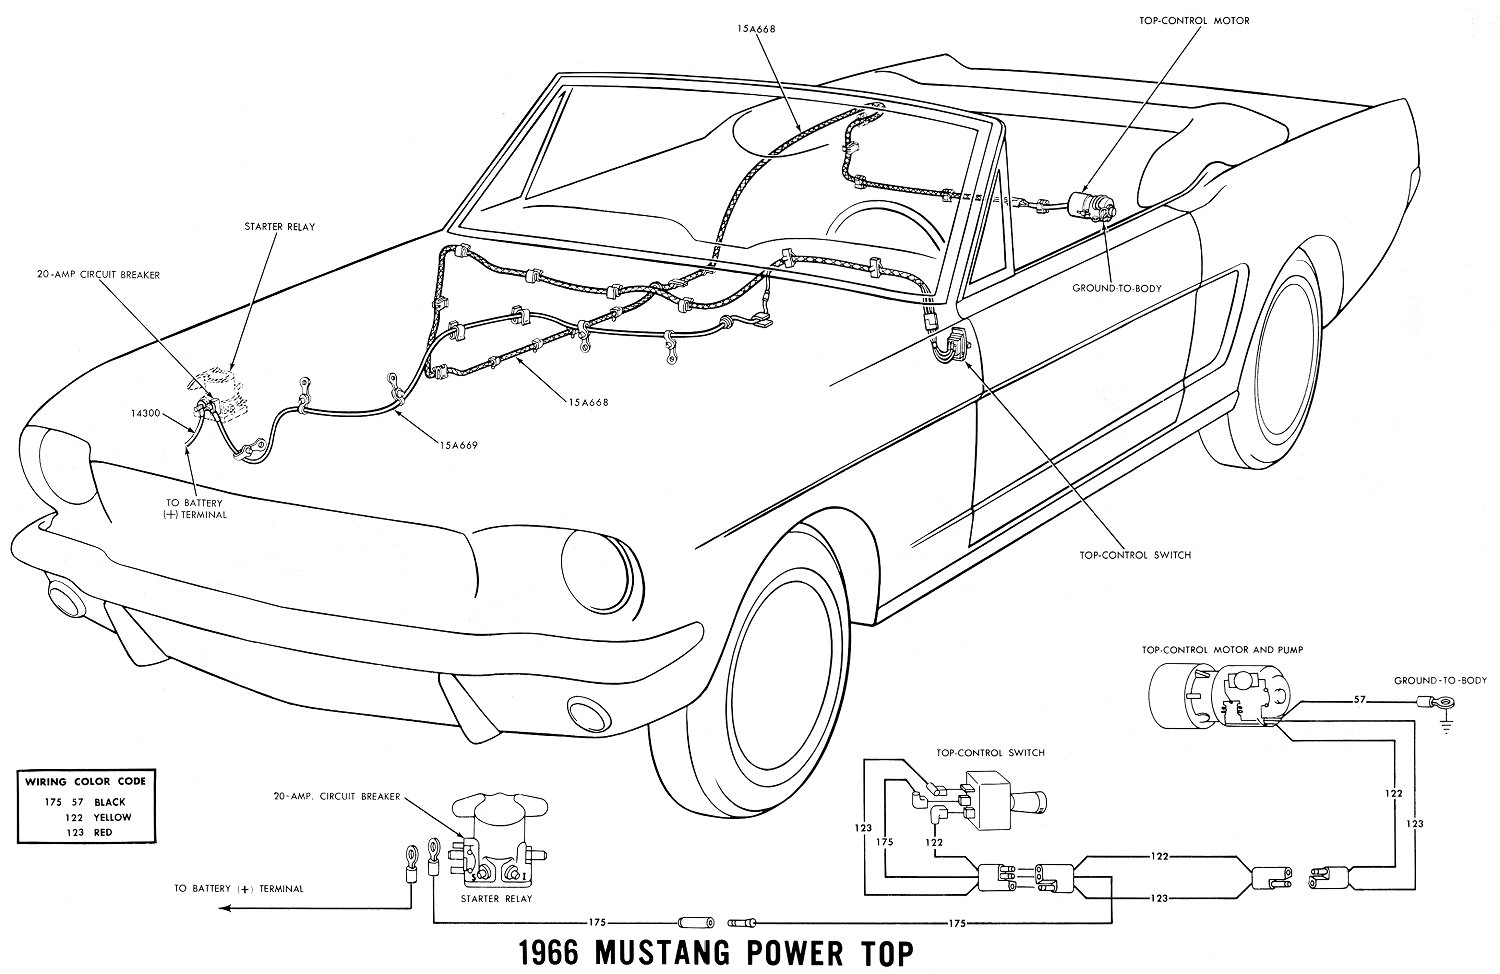 1966 Mustang Wiring Diagrams on air conditioner control wiring diagram